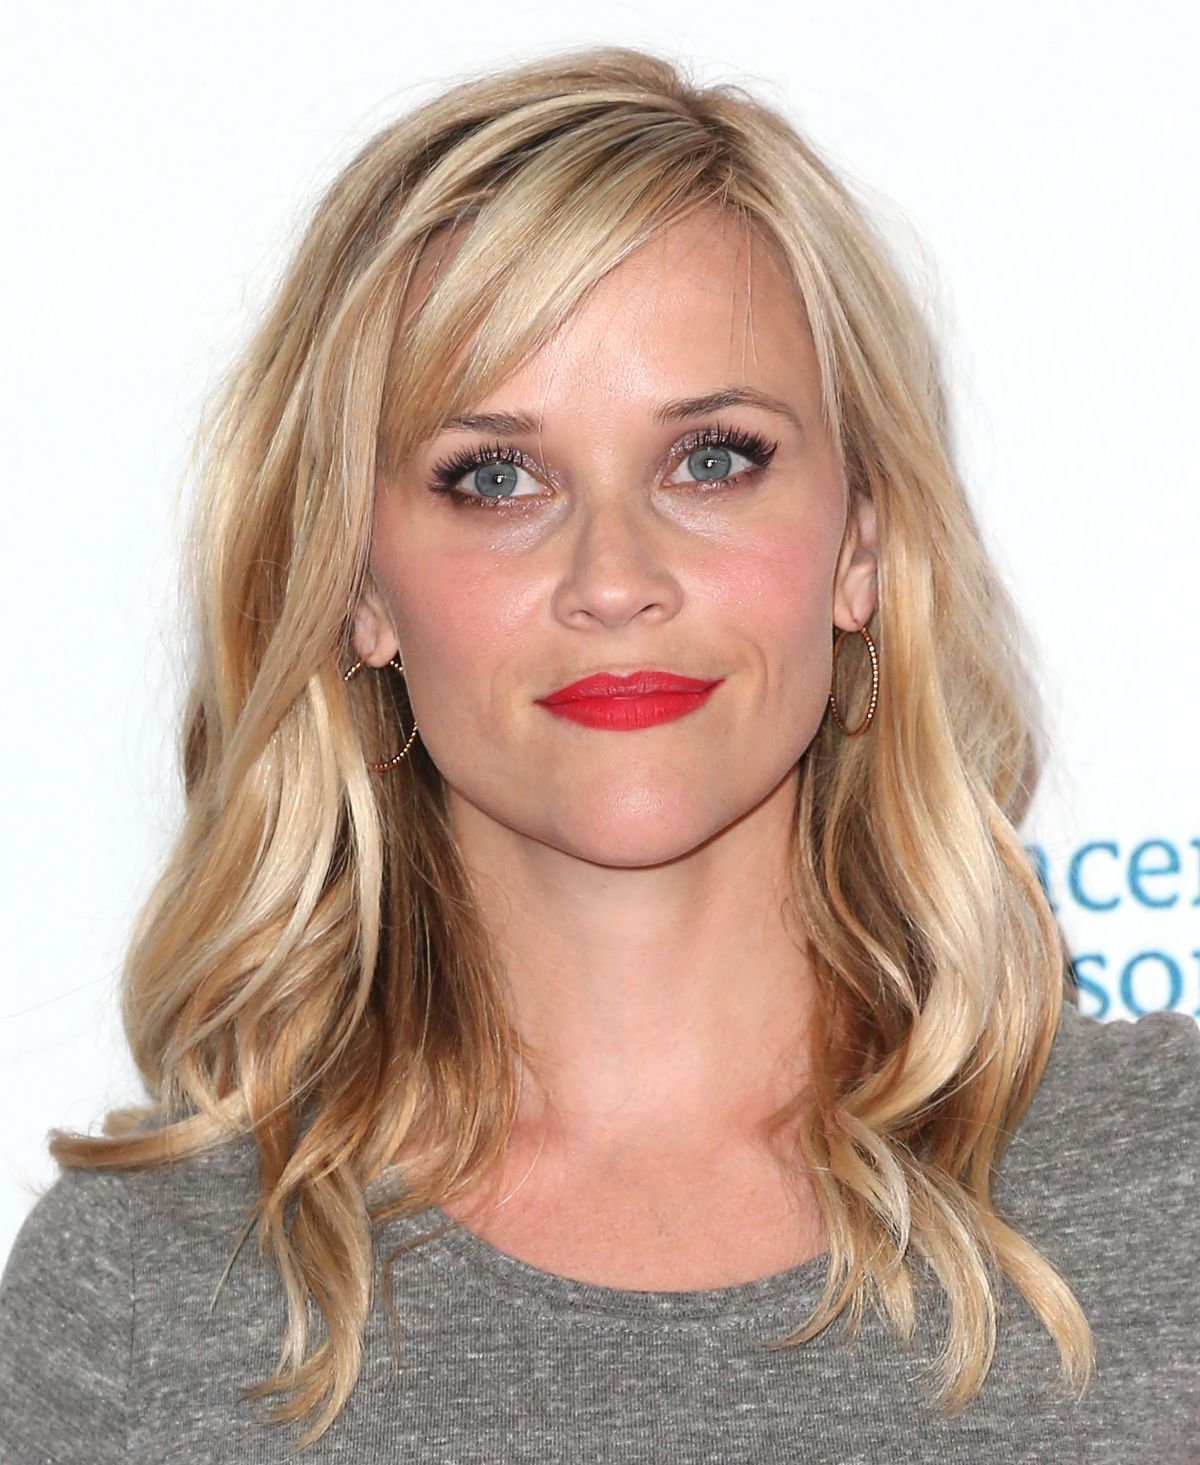 reese witherspoon hair style reese witherspoon hair reese witherspoon hair hair 5098 | 5c477e383a309acb8608d58c2c9a50e3